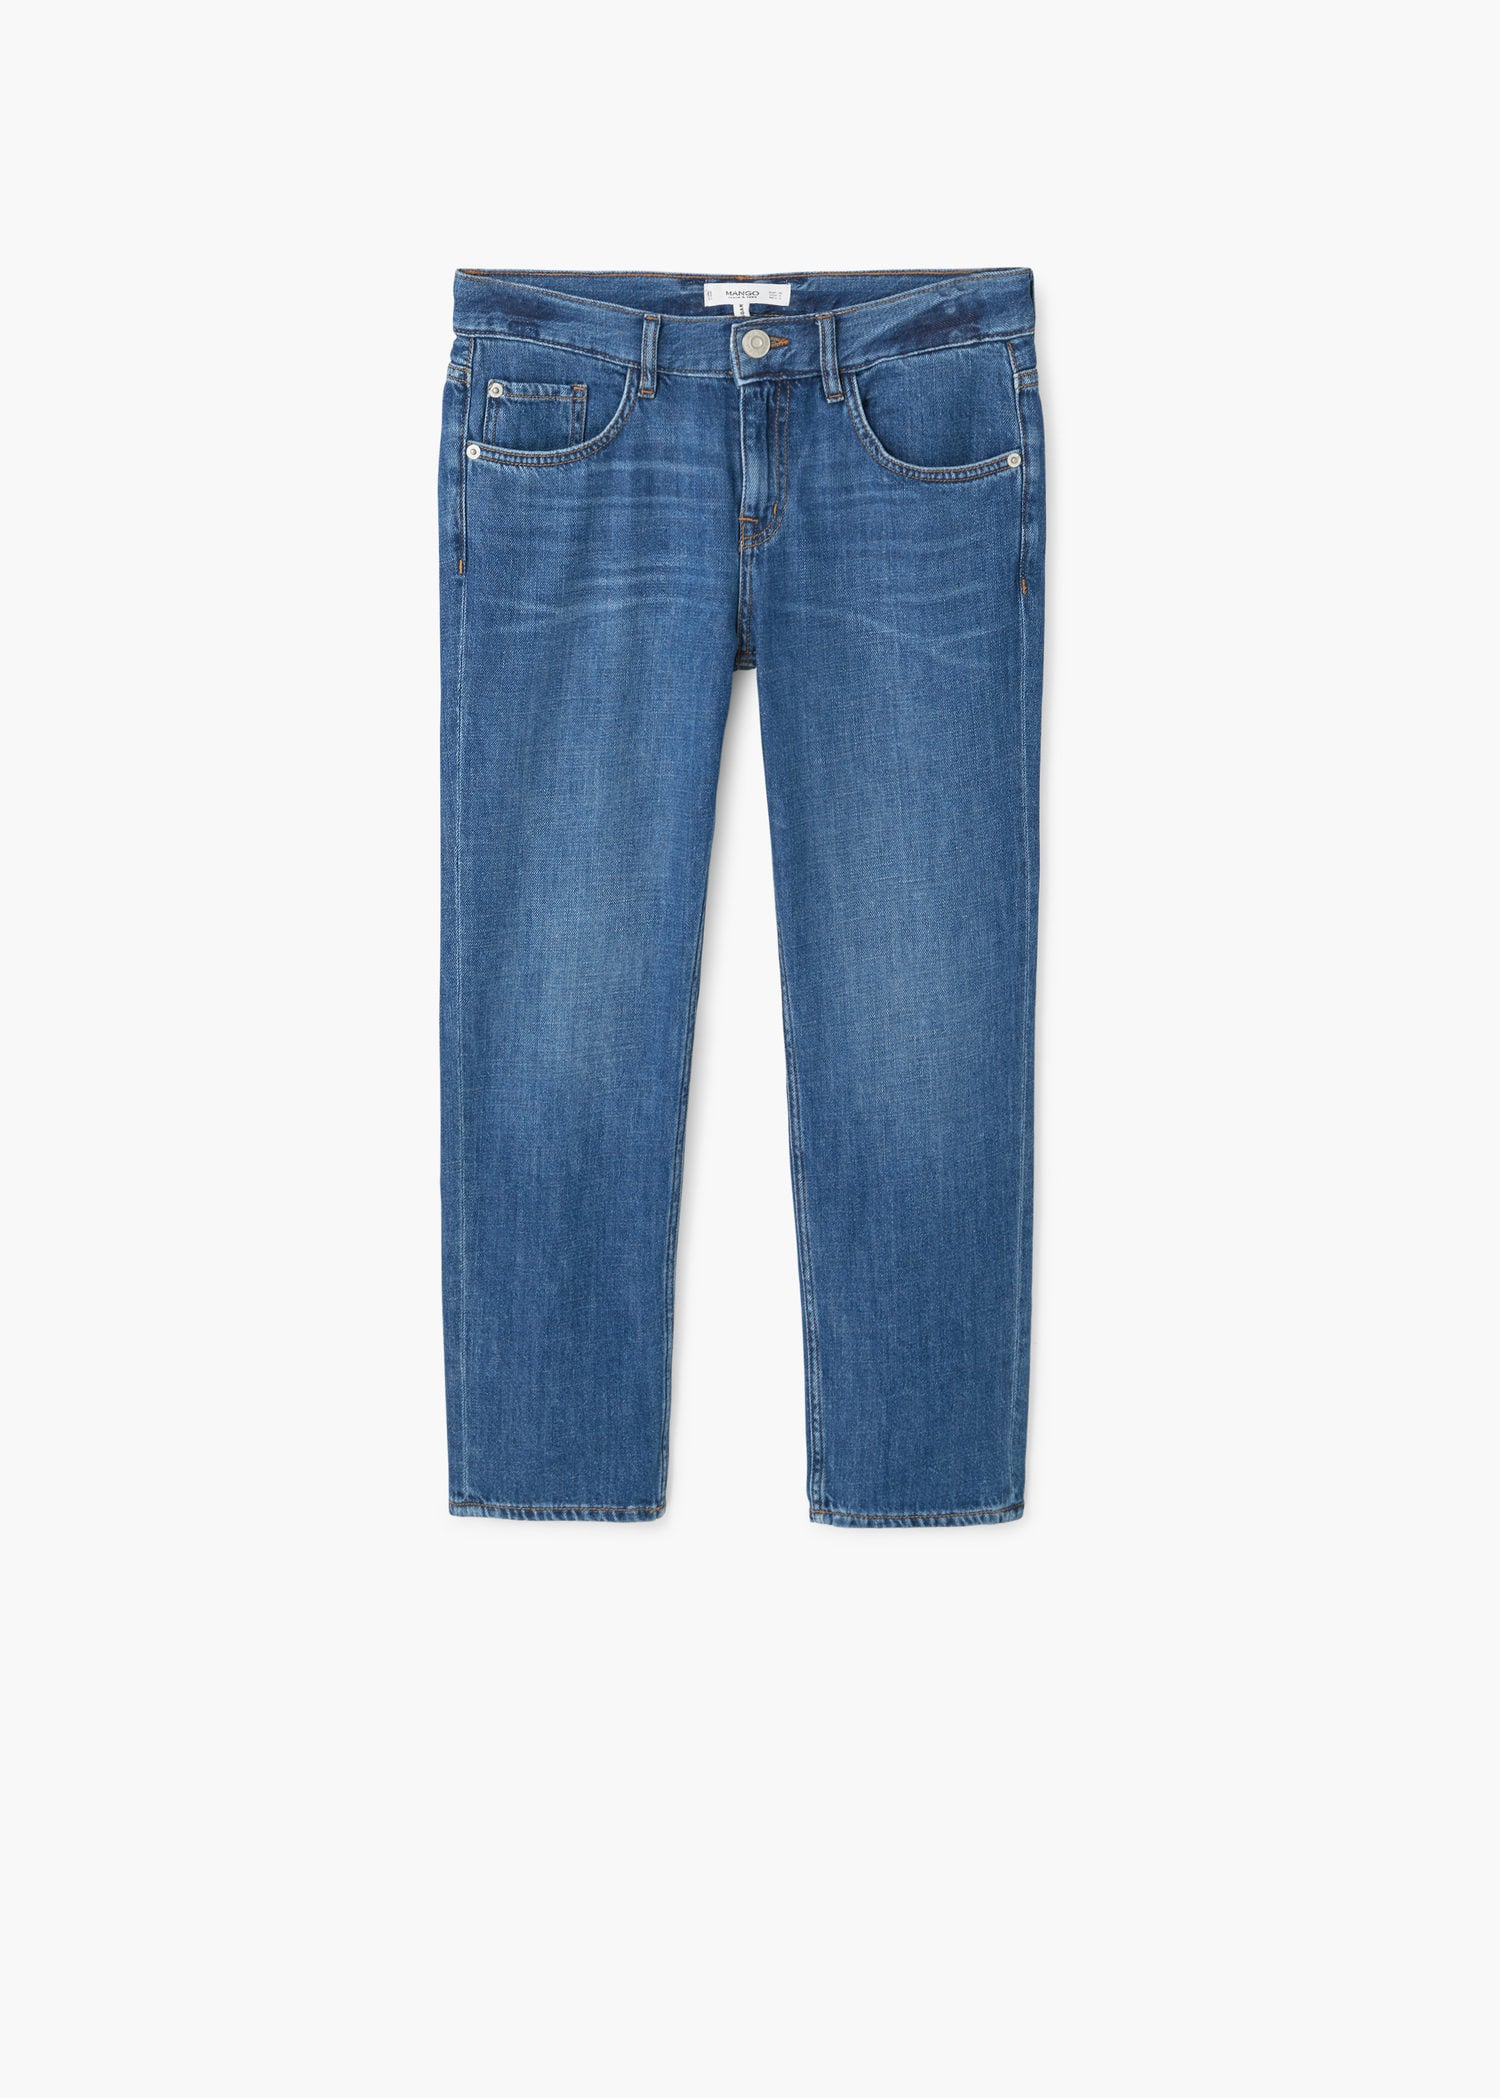 Relaxed fit 78 jeans cigar Damen | OUTLET Luxemburg